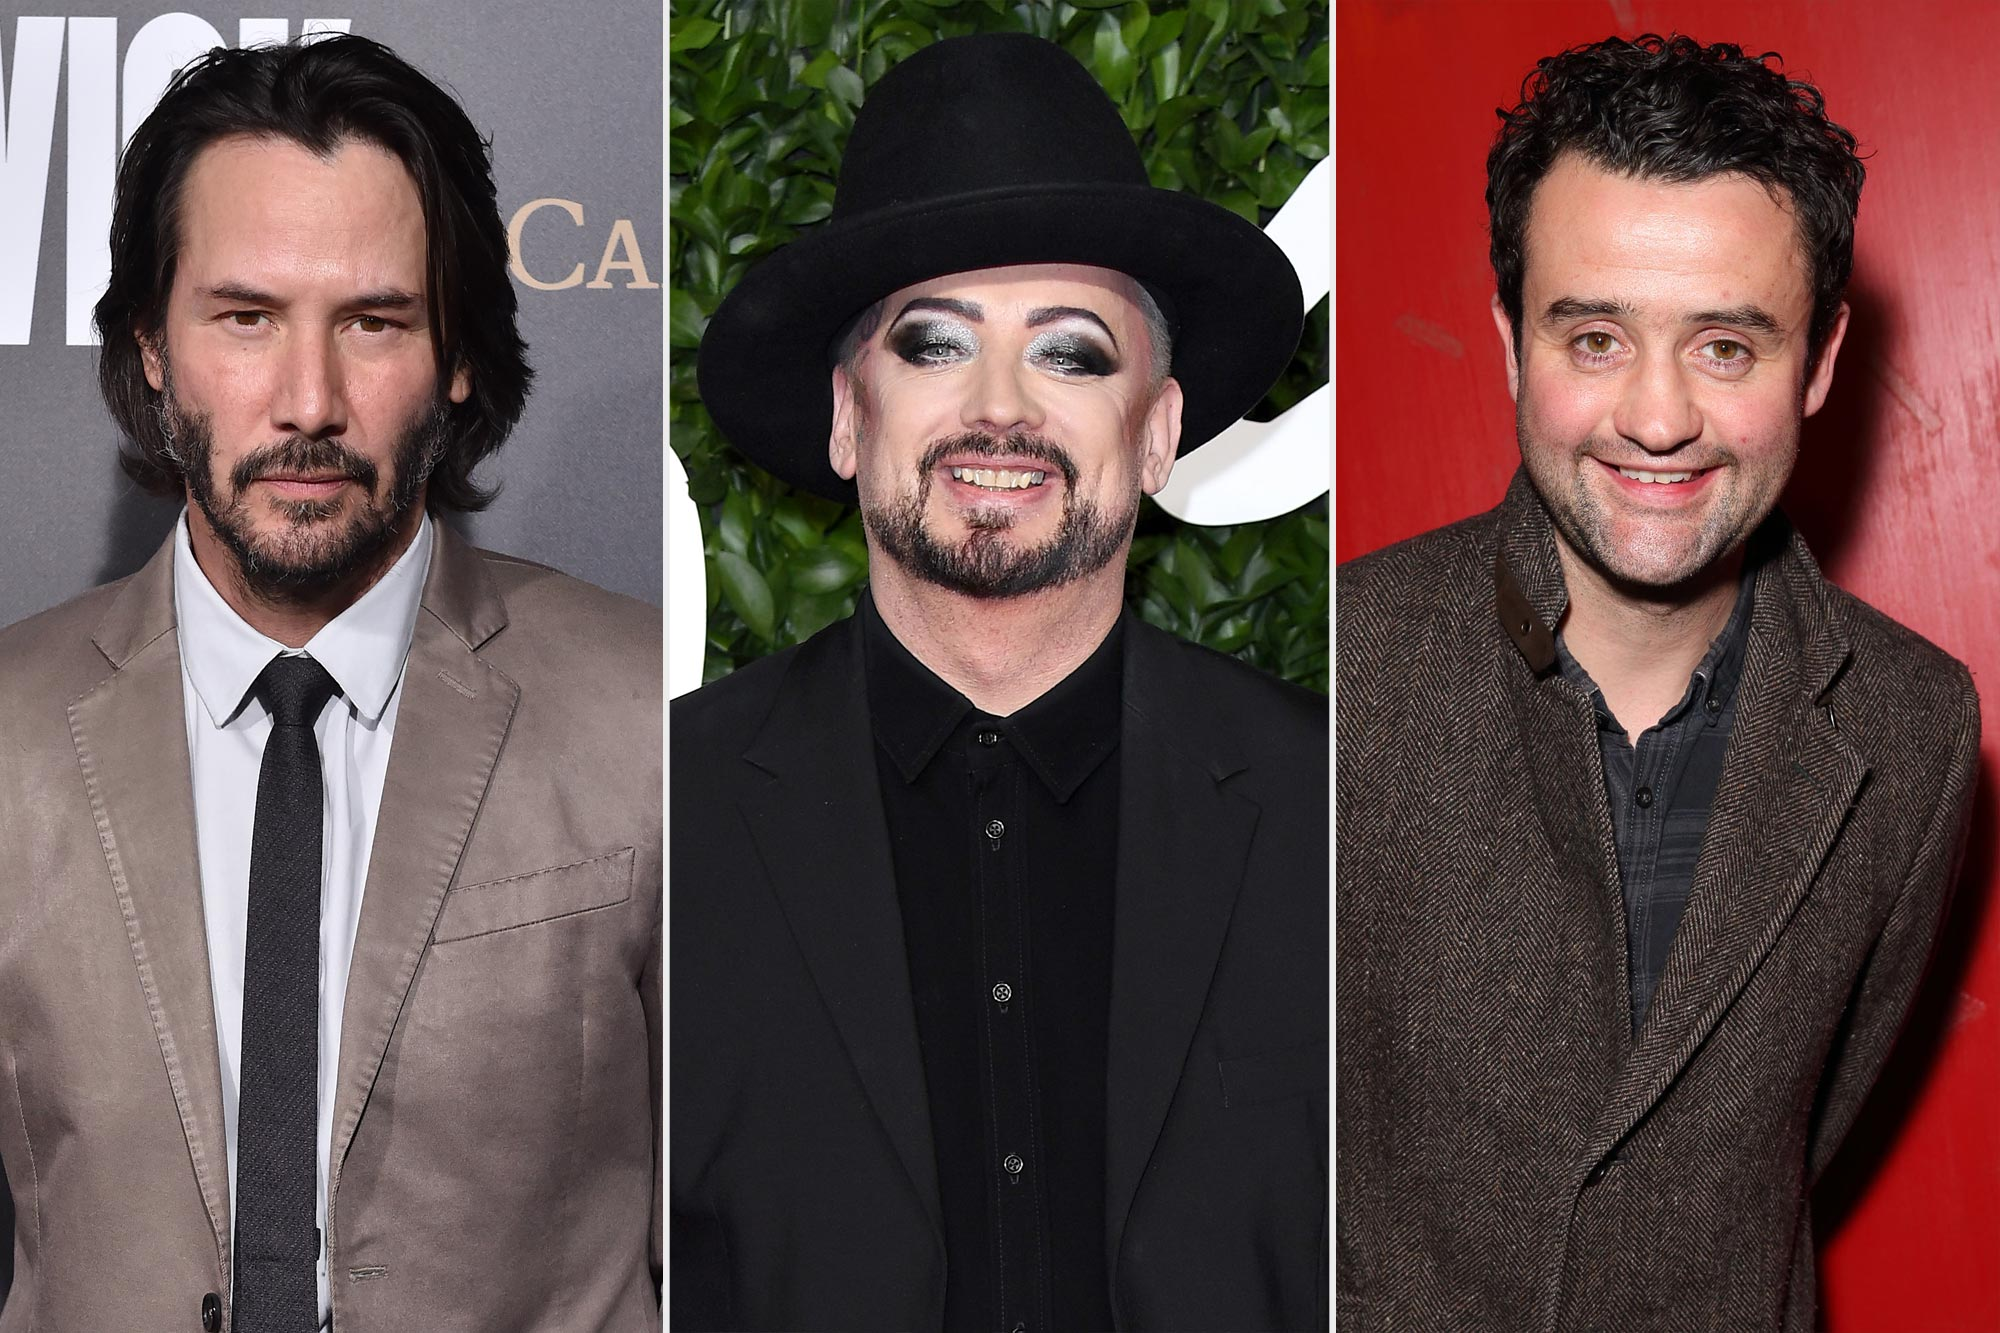 Keanu Reeves, Boy George, Danny Mays